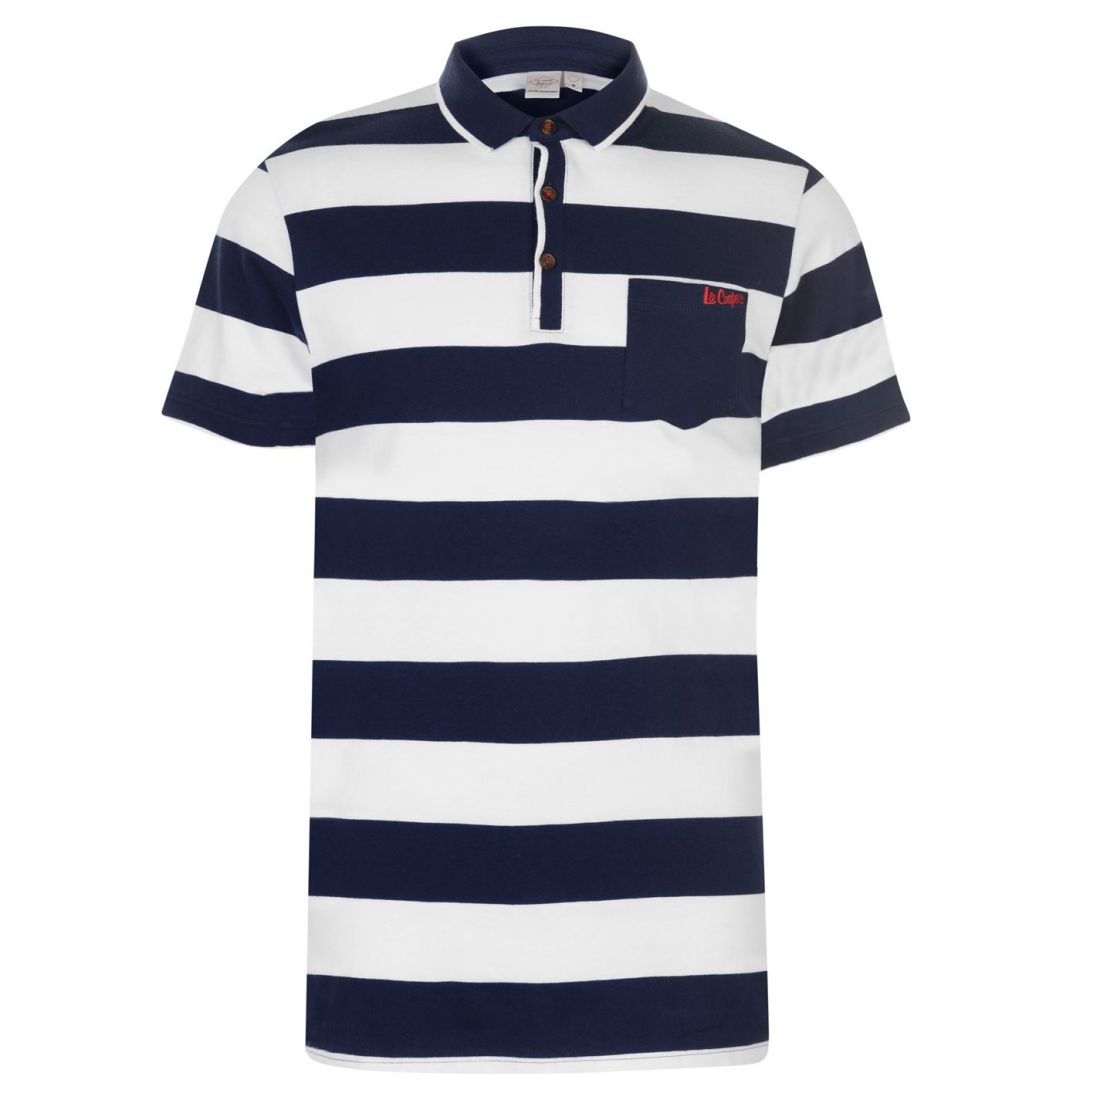 d8166b790 Lee Cooper Mens Stripe Polo Shirt Classic Fit Tee Top Short Sleeve ...